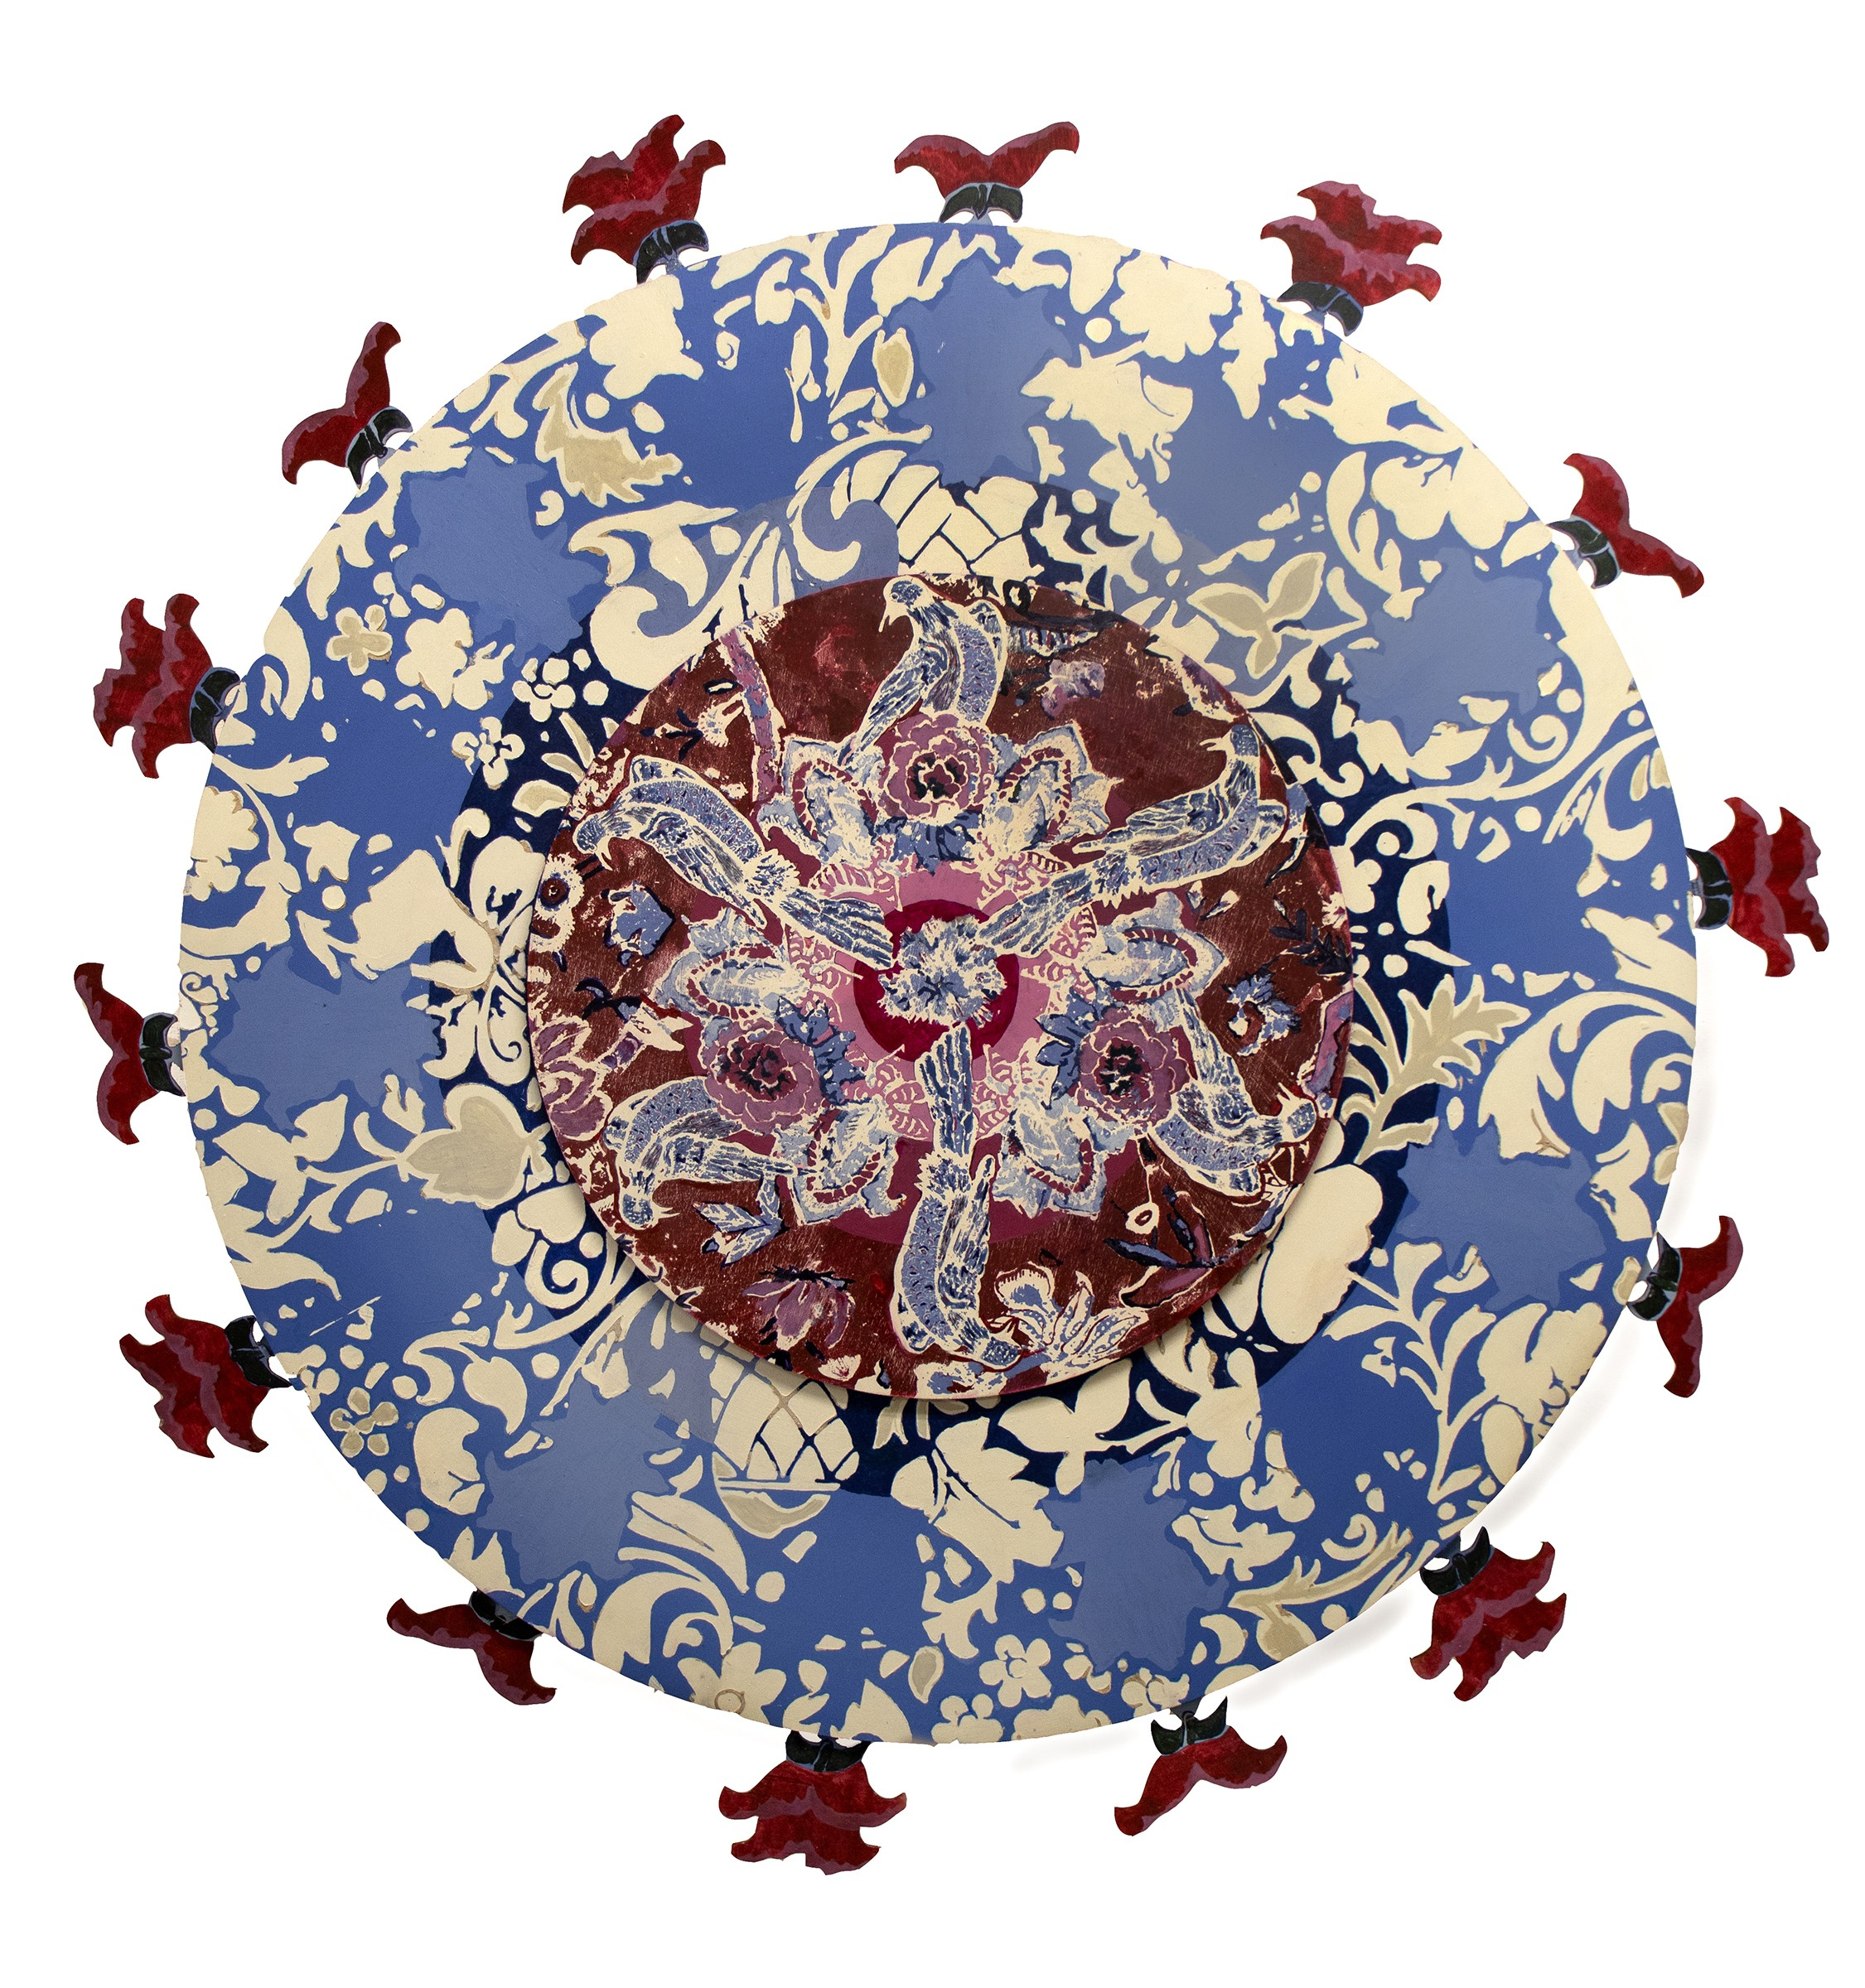 The Calico Acts is a vibrant screenprint on wood split into three circular layers. The innermost circle showcases a bird flapping its wings in an attempt to escape the outer circles. The next layer depicts the British glazed imitation of Chintz and has bl